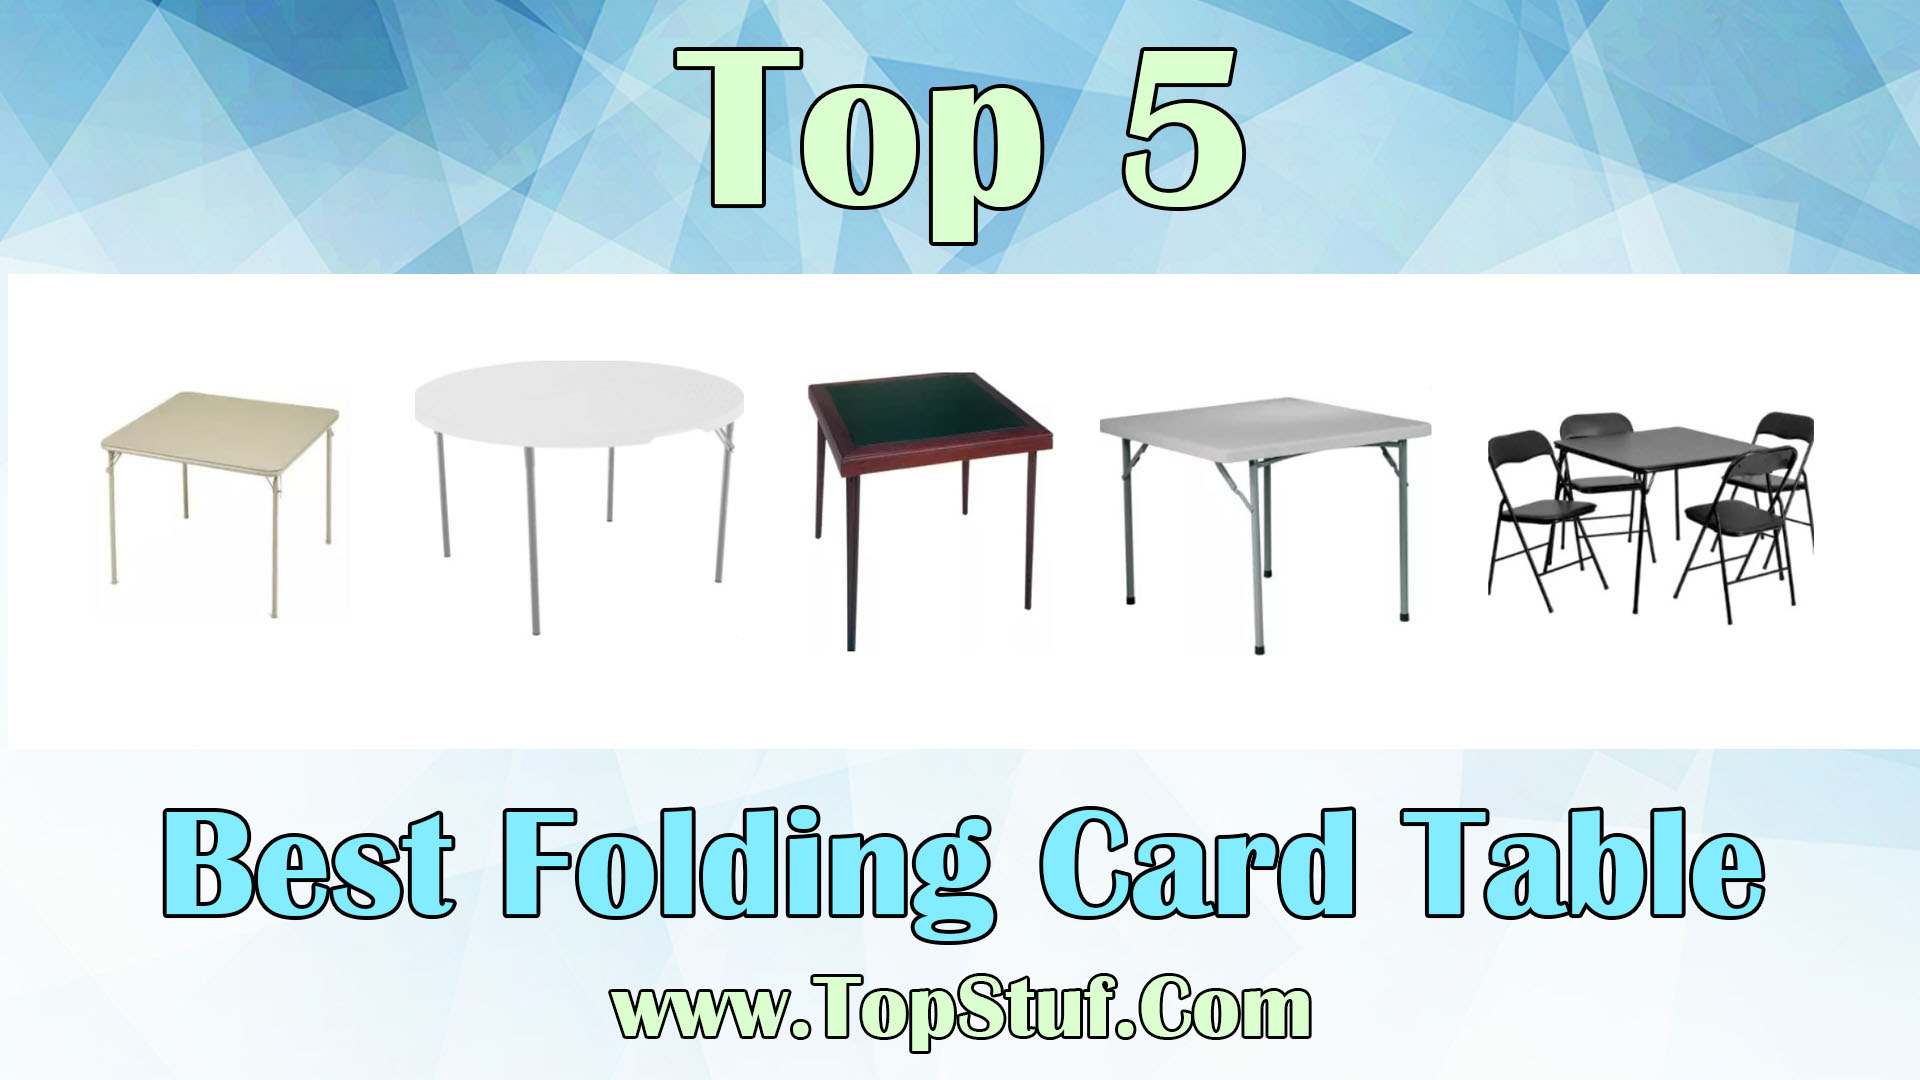 Best Folding Card Table